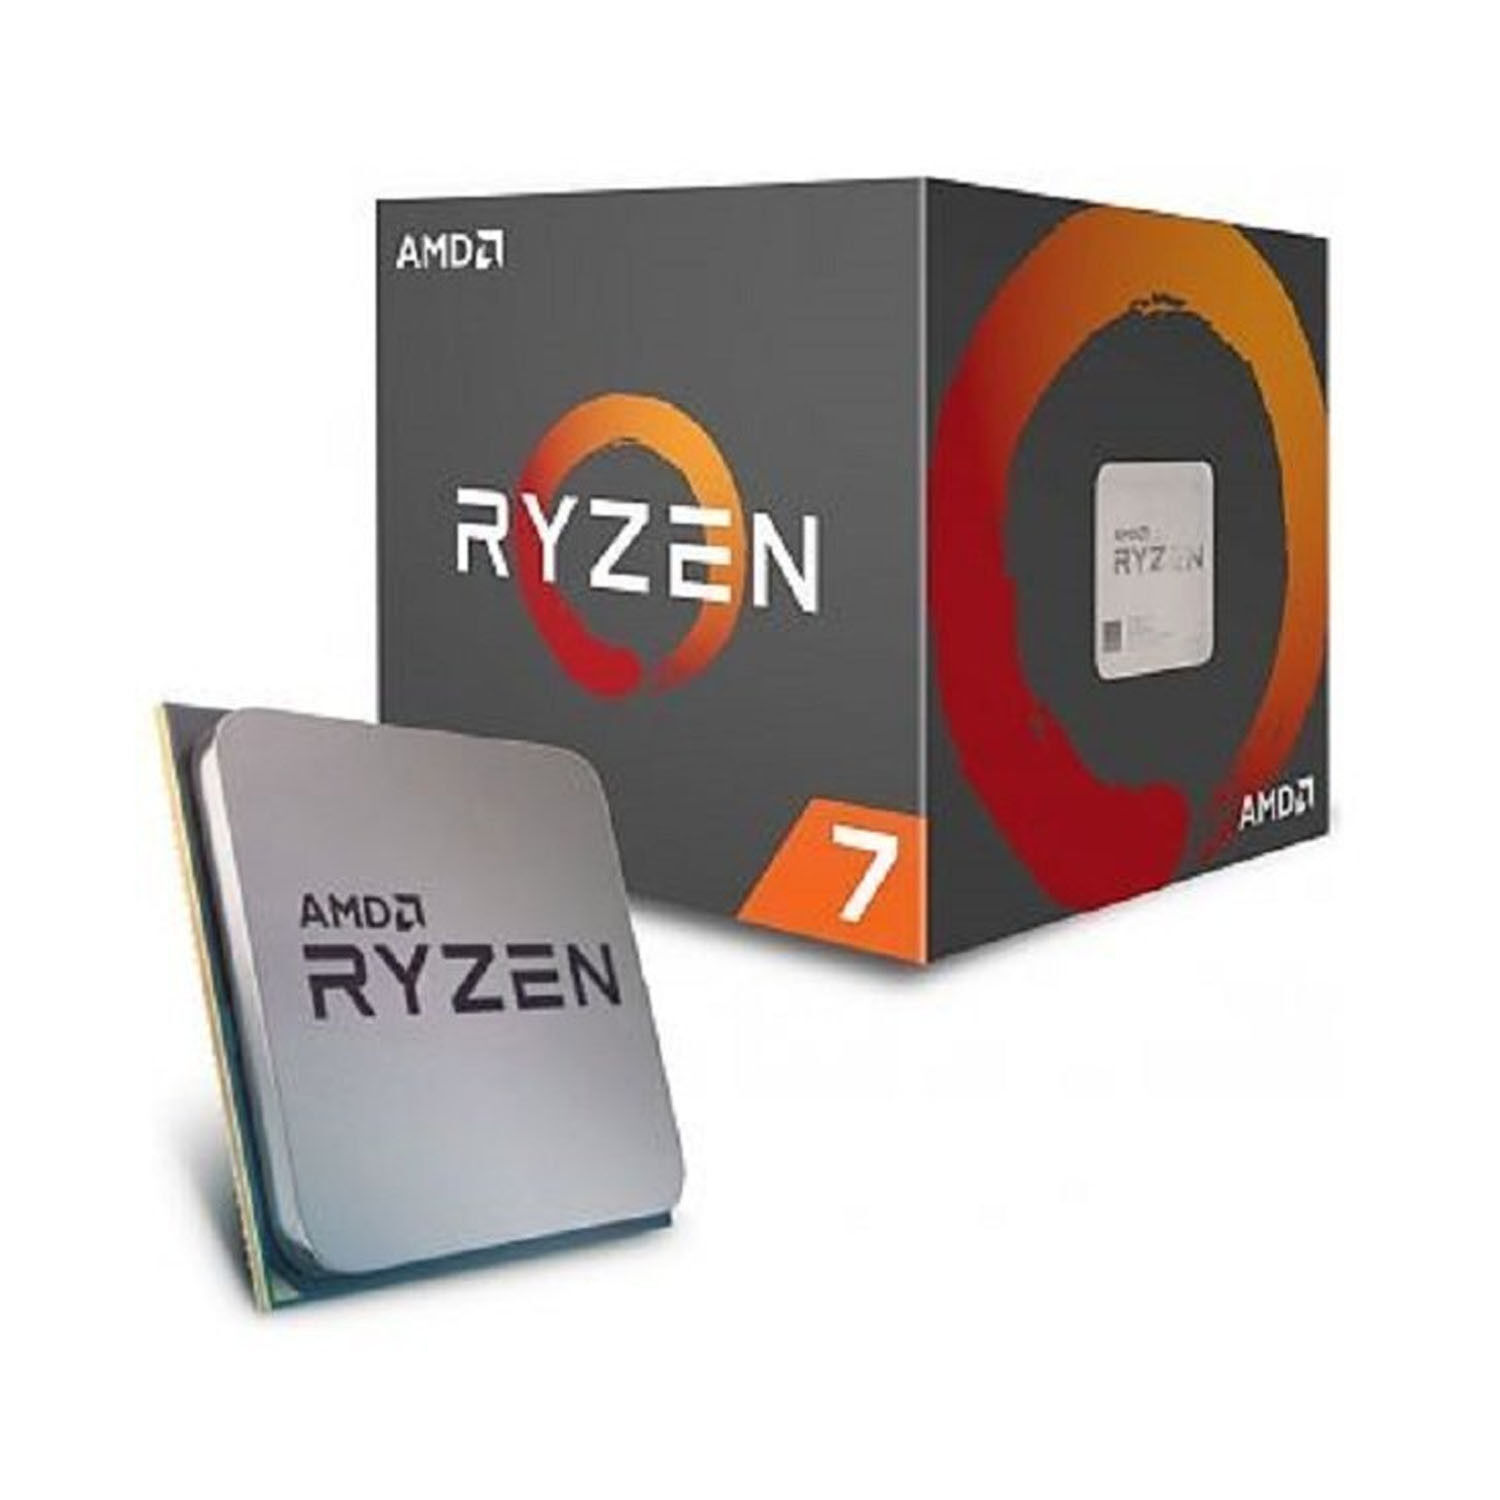 AMD RYZEN 7 1700 8-Core 3.0GHz (3.7GHz Turbo) AM4 65W YD1700BBAEBOX Processor